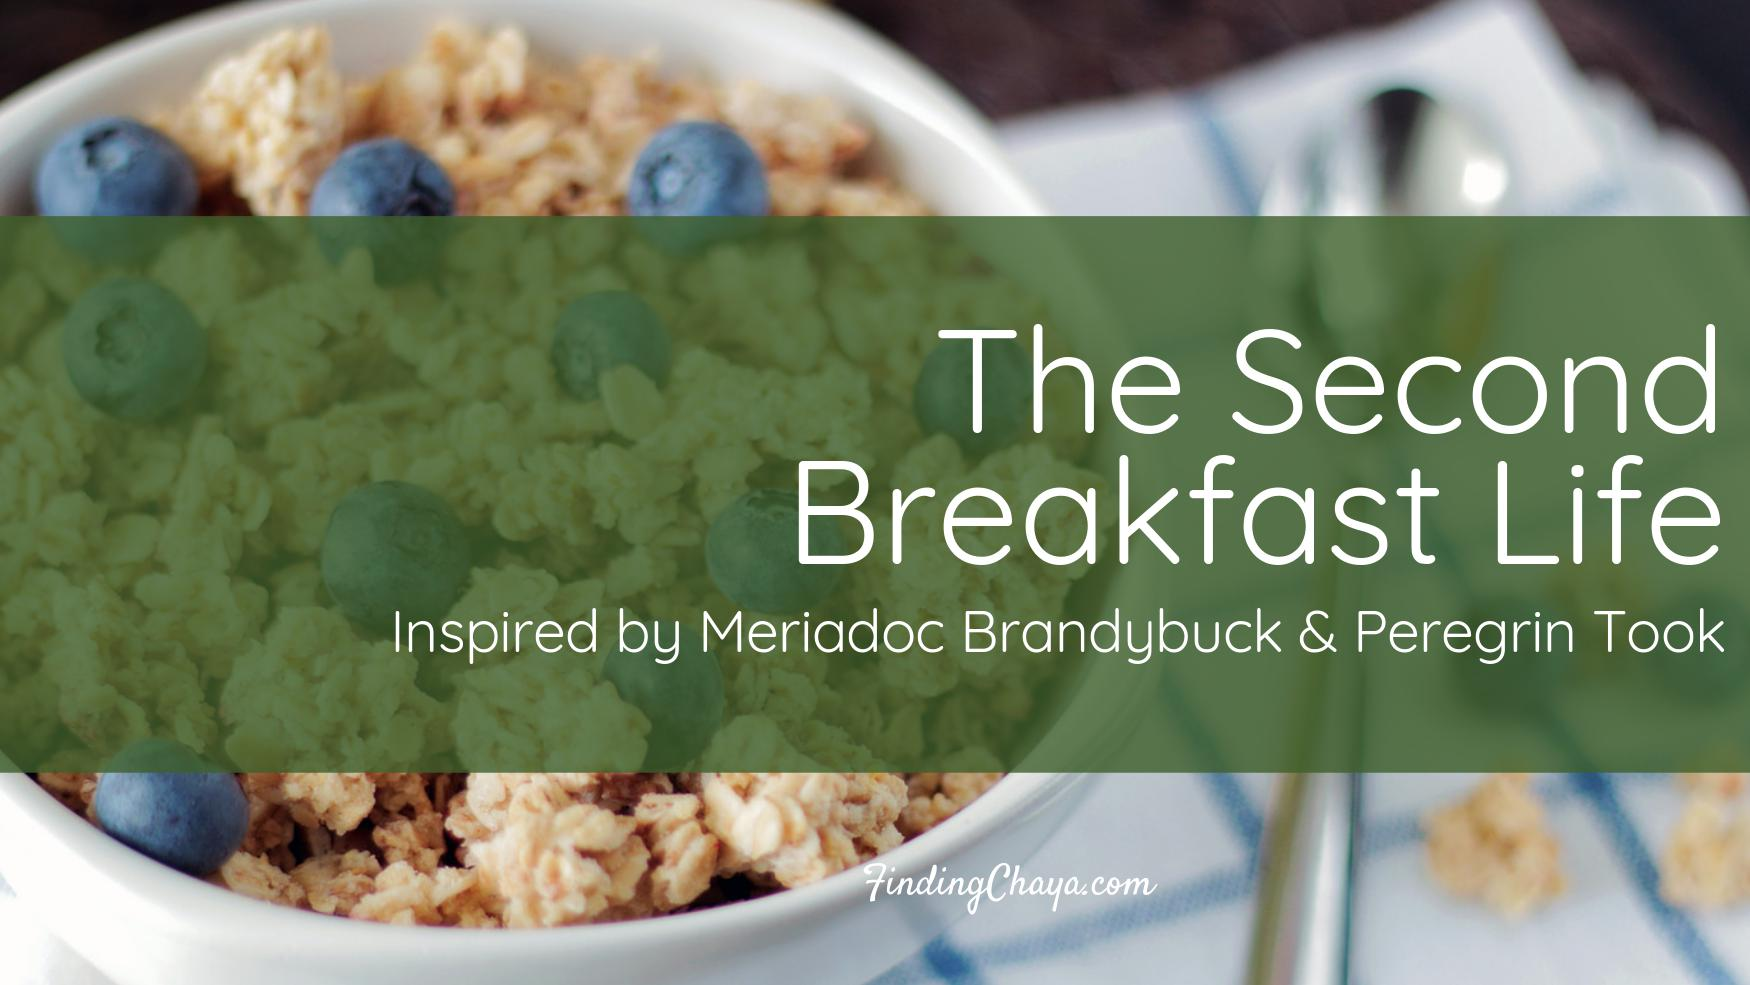 The Second Breakfast Life as inspired by Meriadoc Brandybuck and Peregrin Took